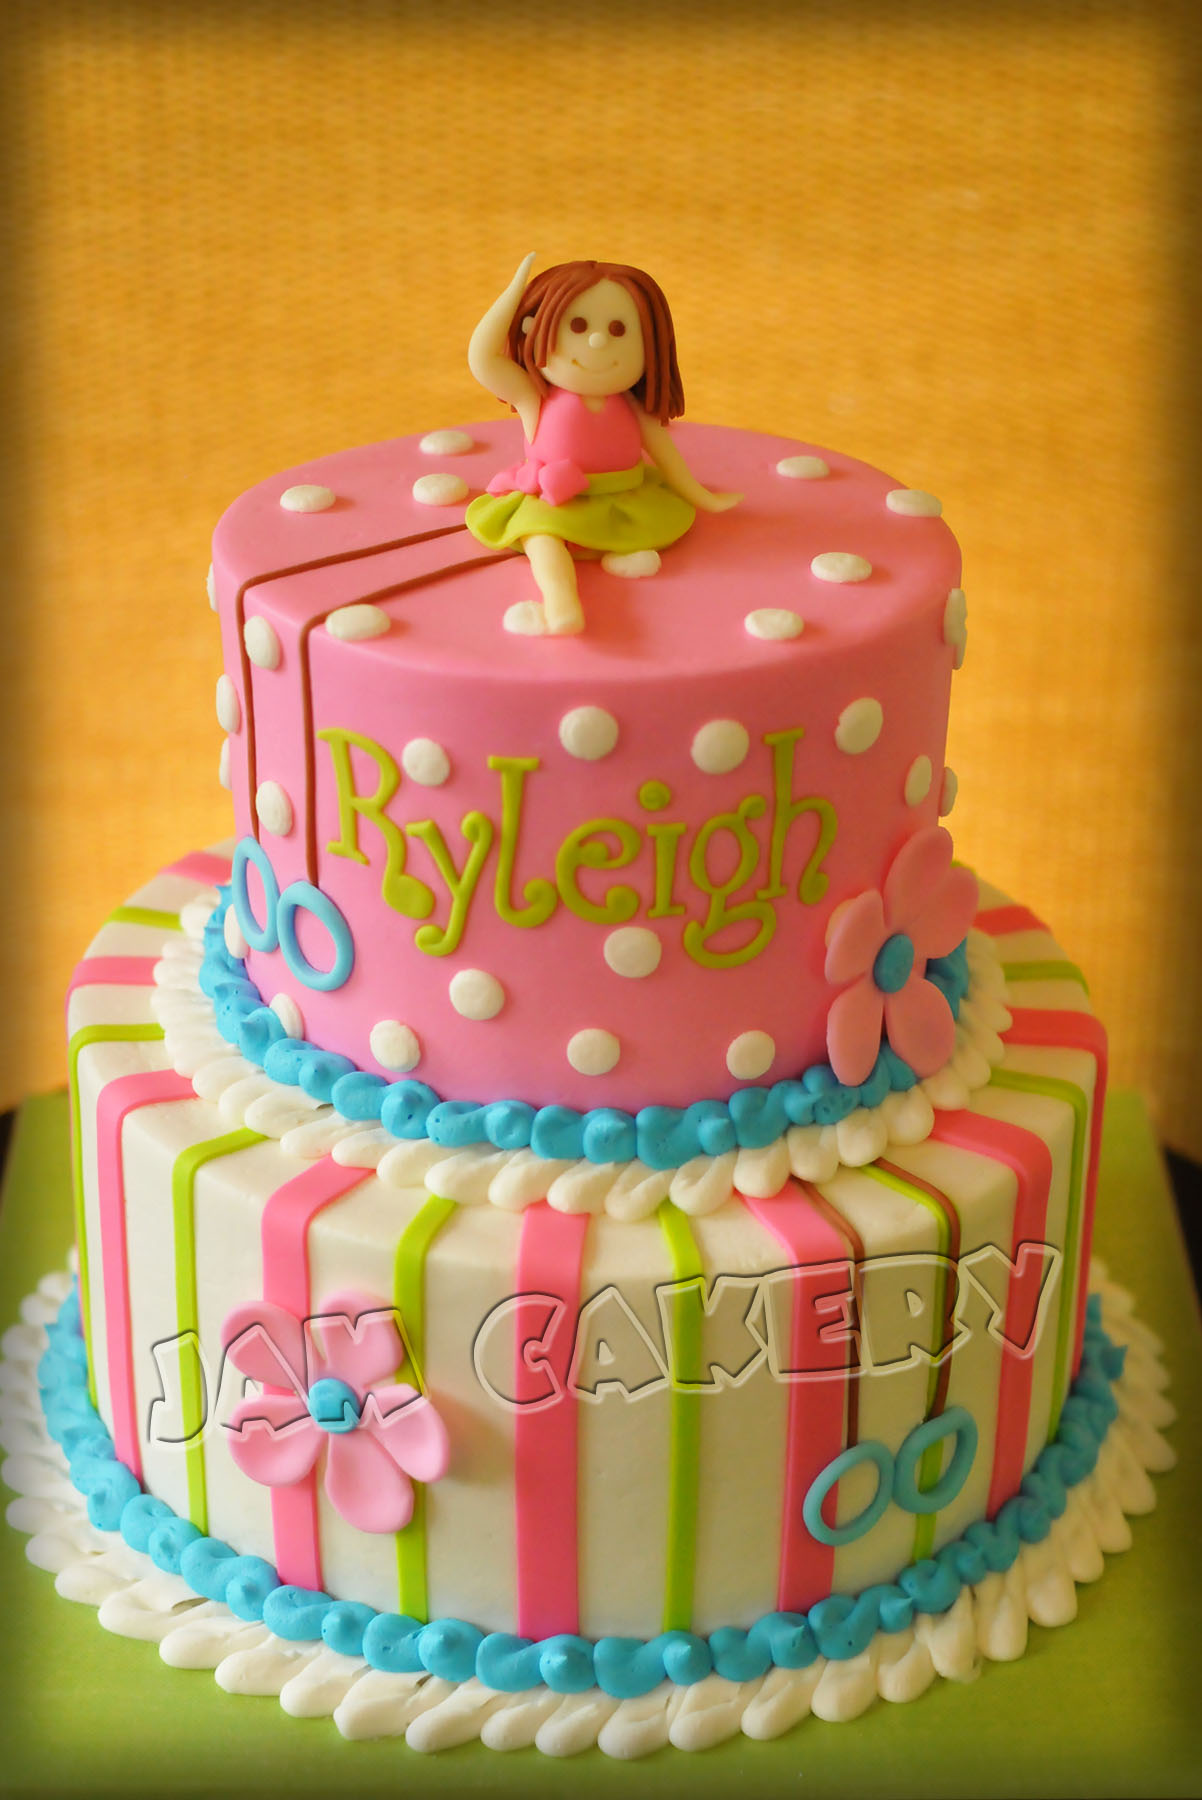 Excellent Gymnast Birthday Cake J A M Cakery Personalised Birthday Cards Paralily Jamesorg